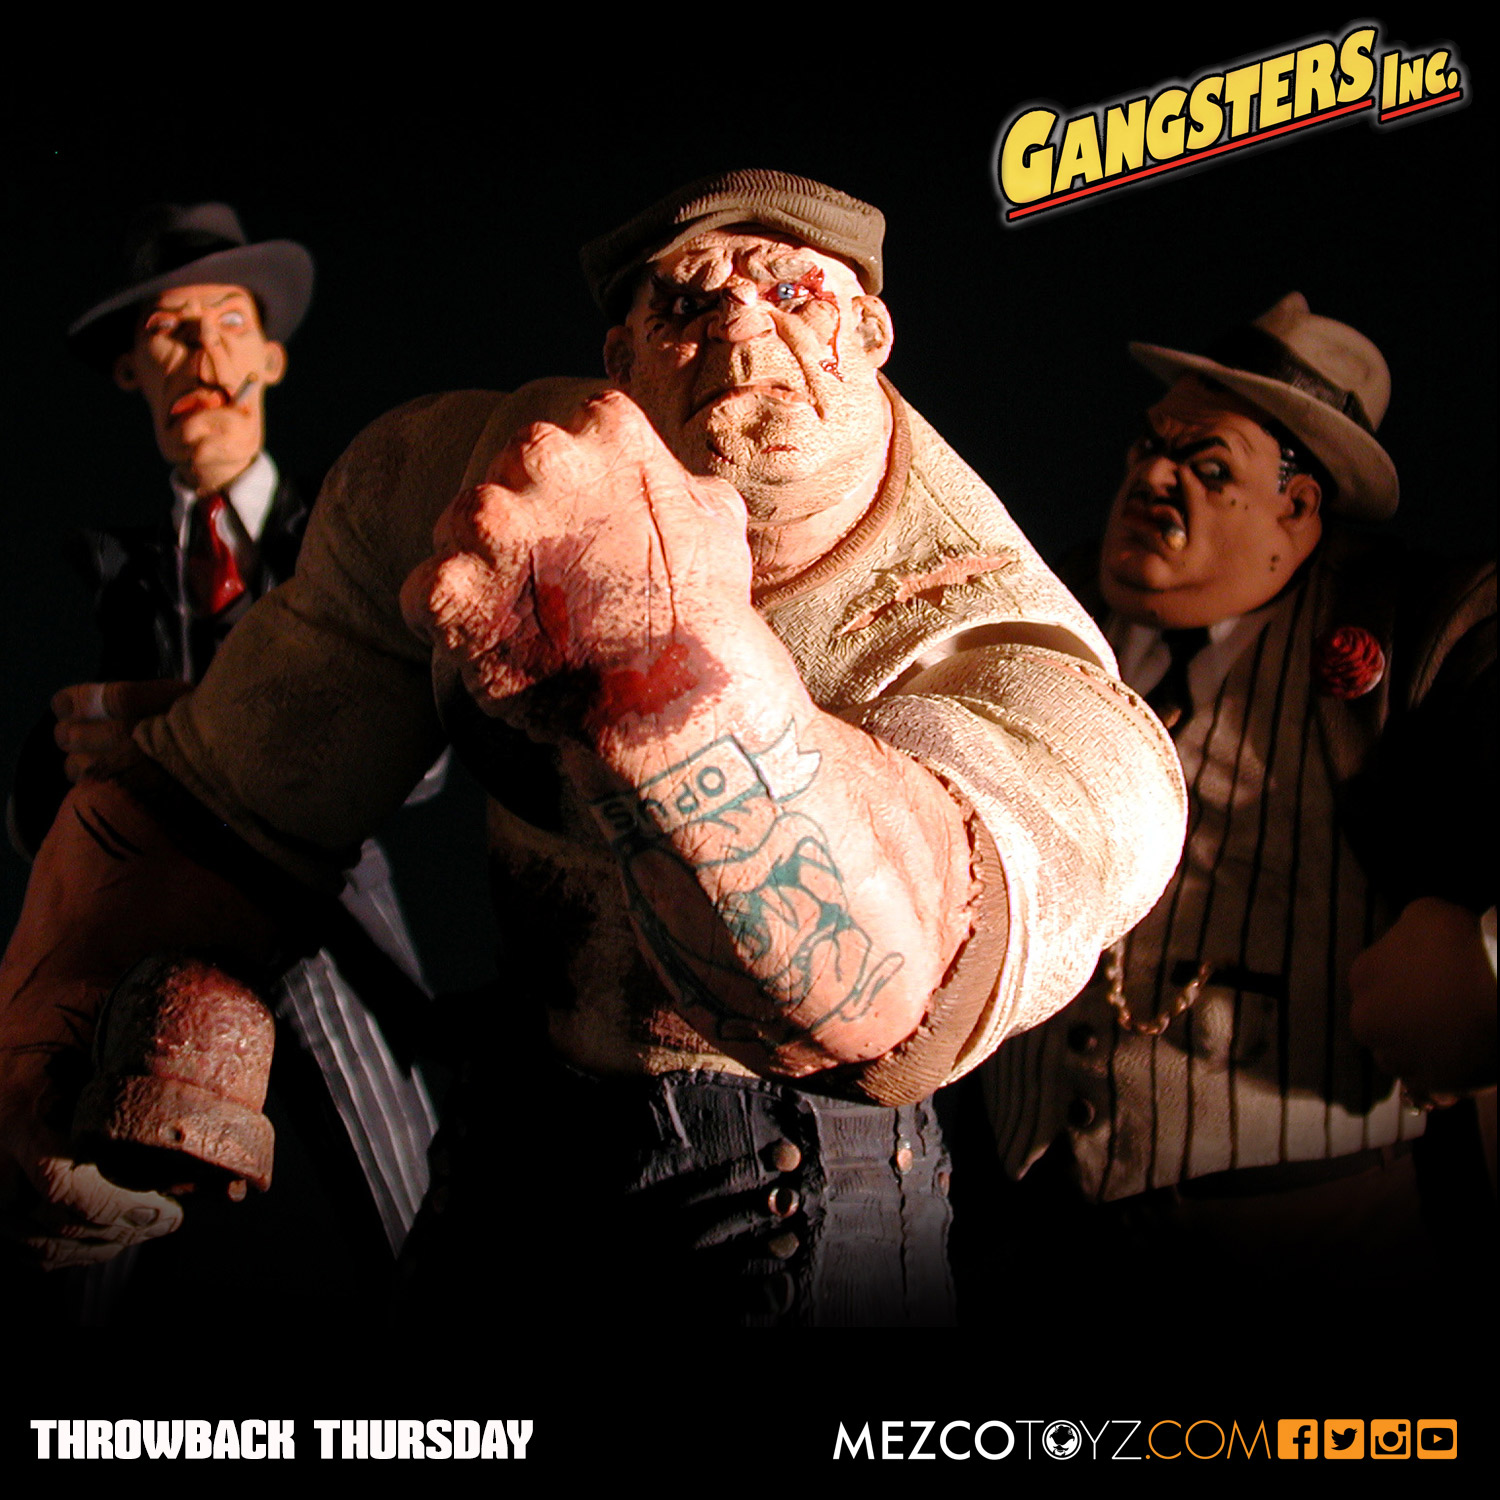 Mezco Toyz Gangsters Inc. Action Figures